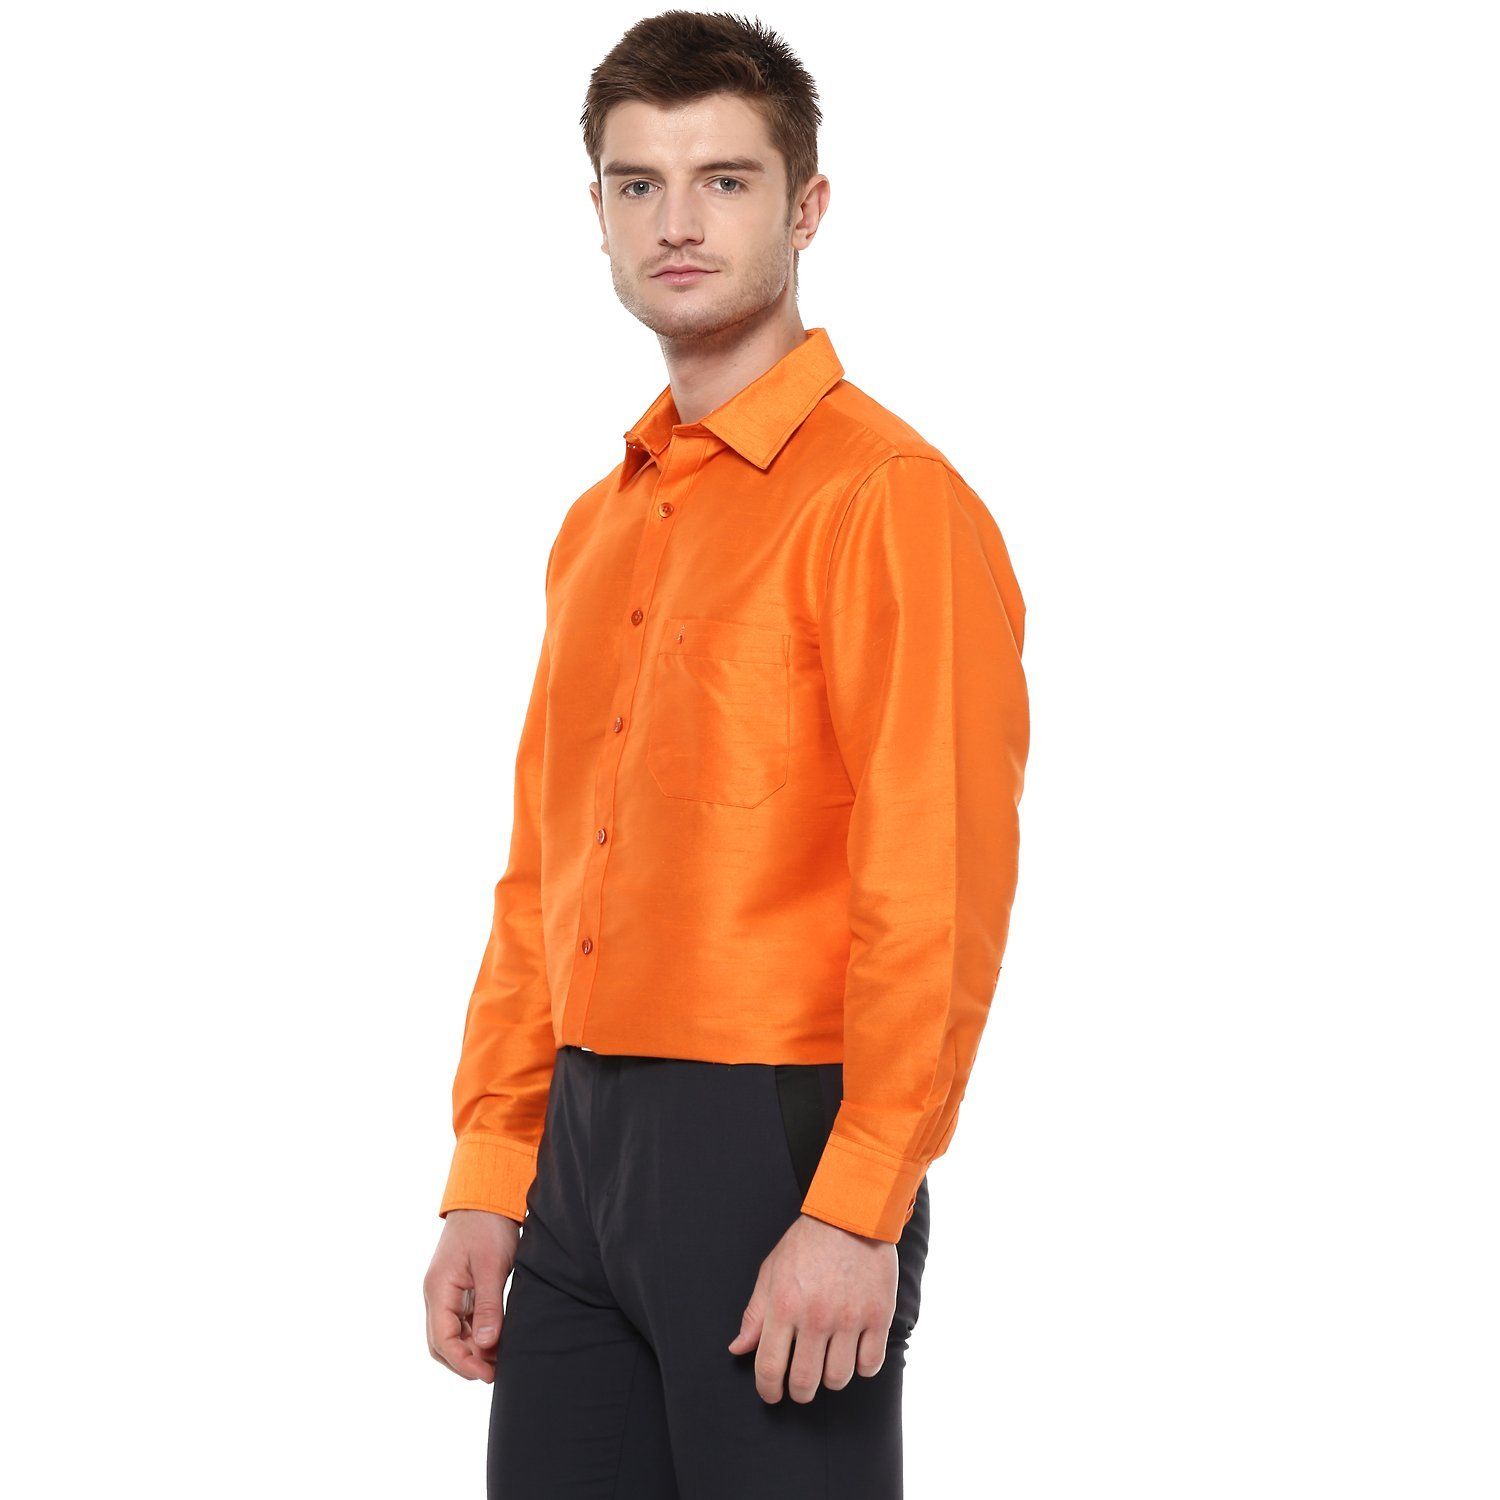 9d44f49904dfc Khoday Williams Men Poly Silk Plain Solid Half Sleeve Regular Fit Casual  Formal Shirt Orange M  Amazon.in  Clothing   Accessories